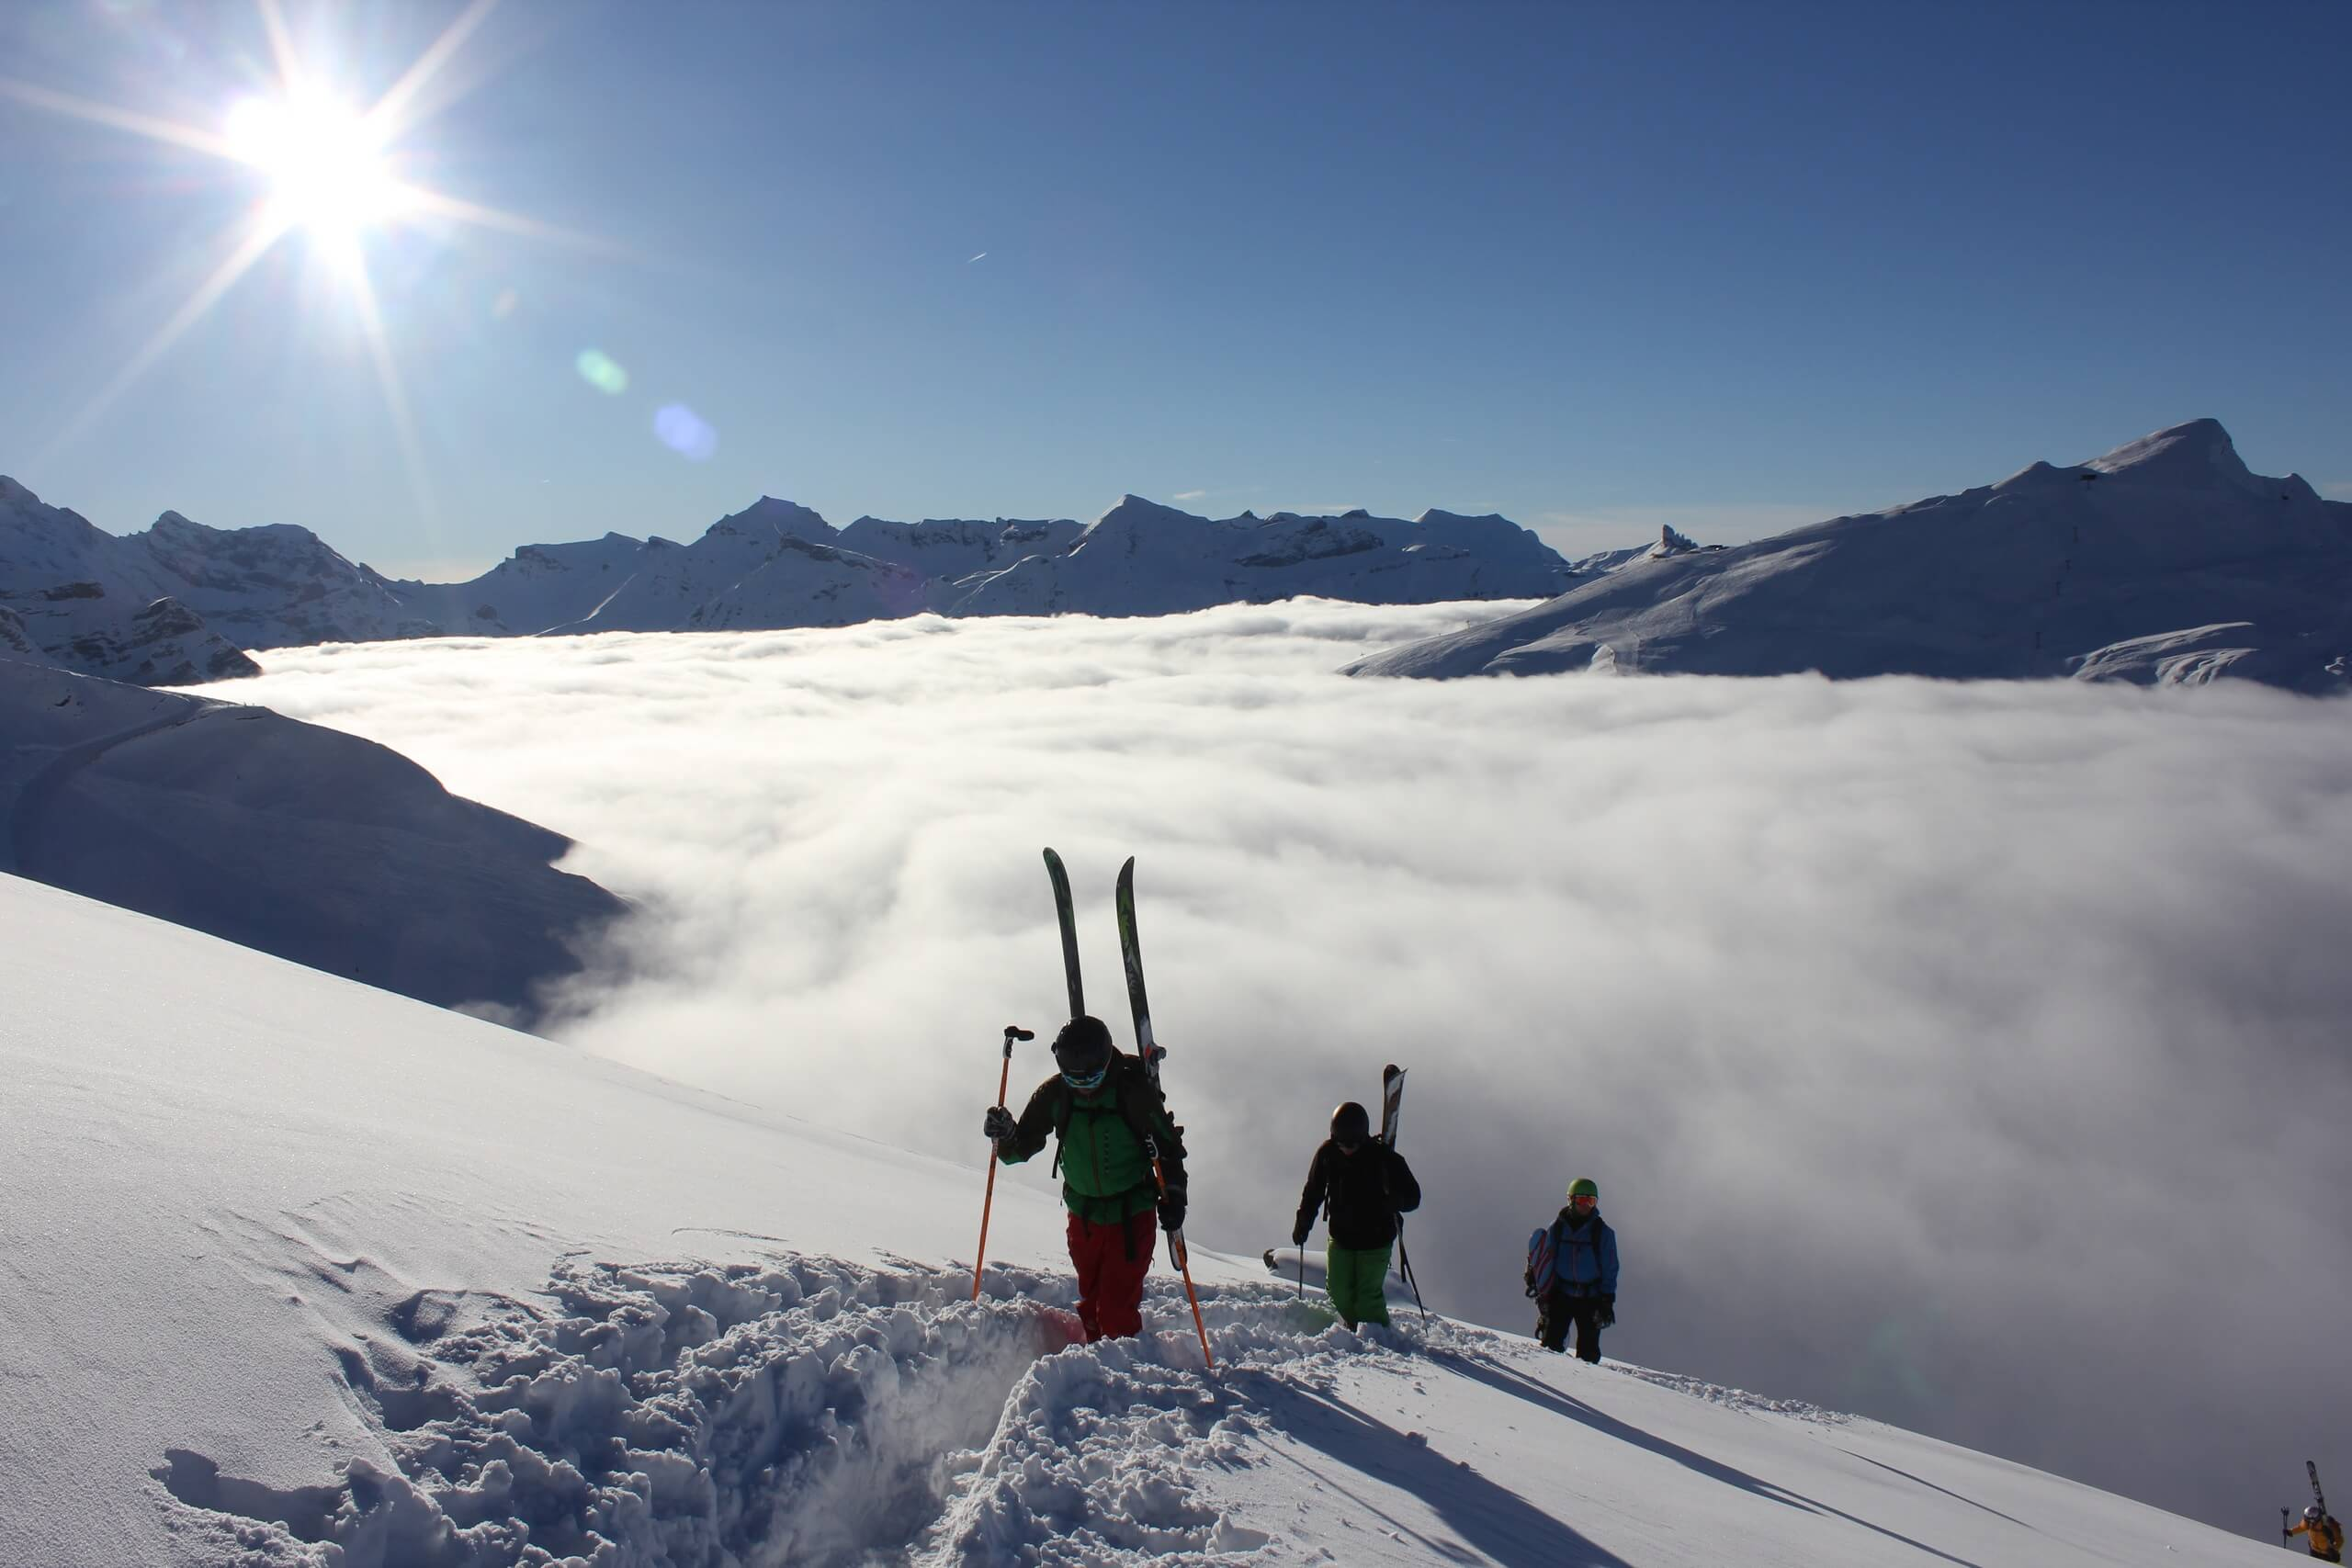 swiss-alpine-guides-ski-tour-freeride-winter